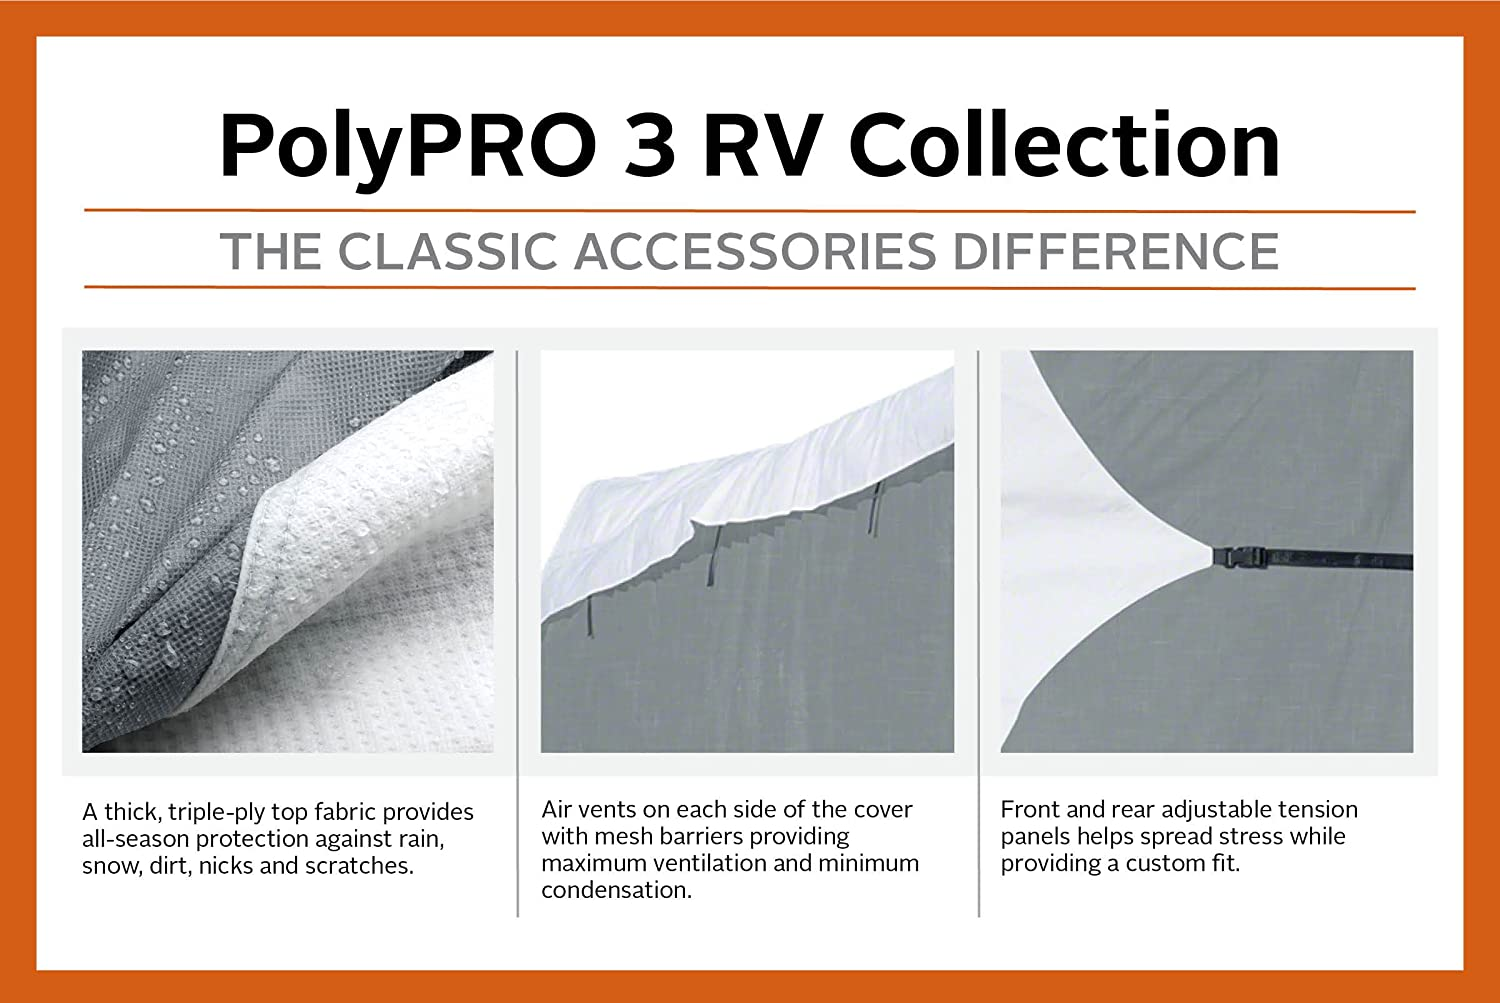 Fits 20-23 RVs Classic Accessories OverDrive PolyPro 3 Deluxe Class C RV Cover